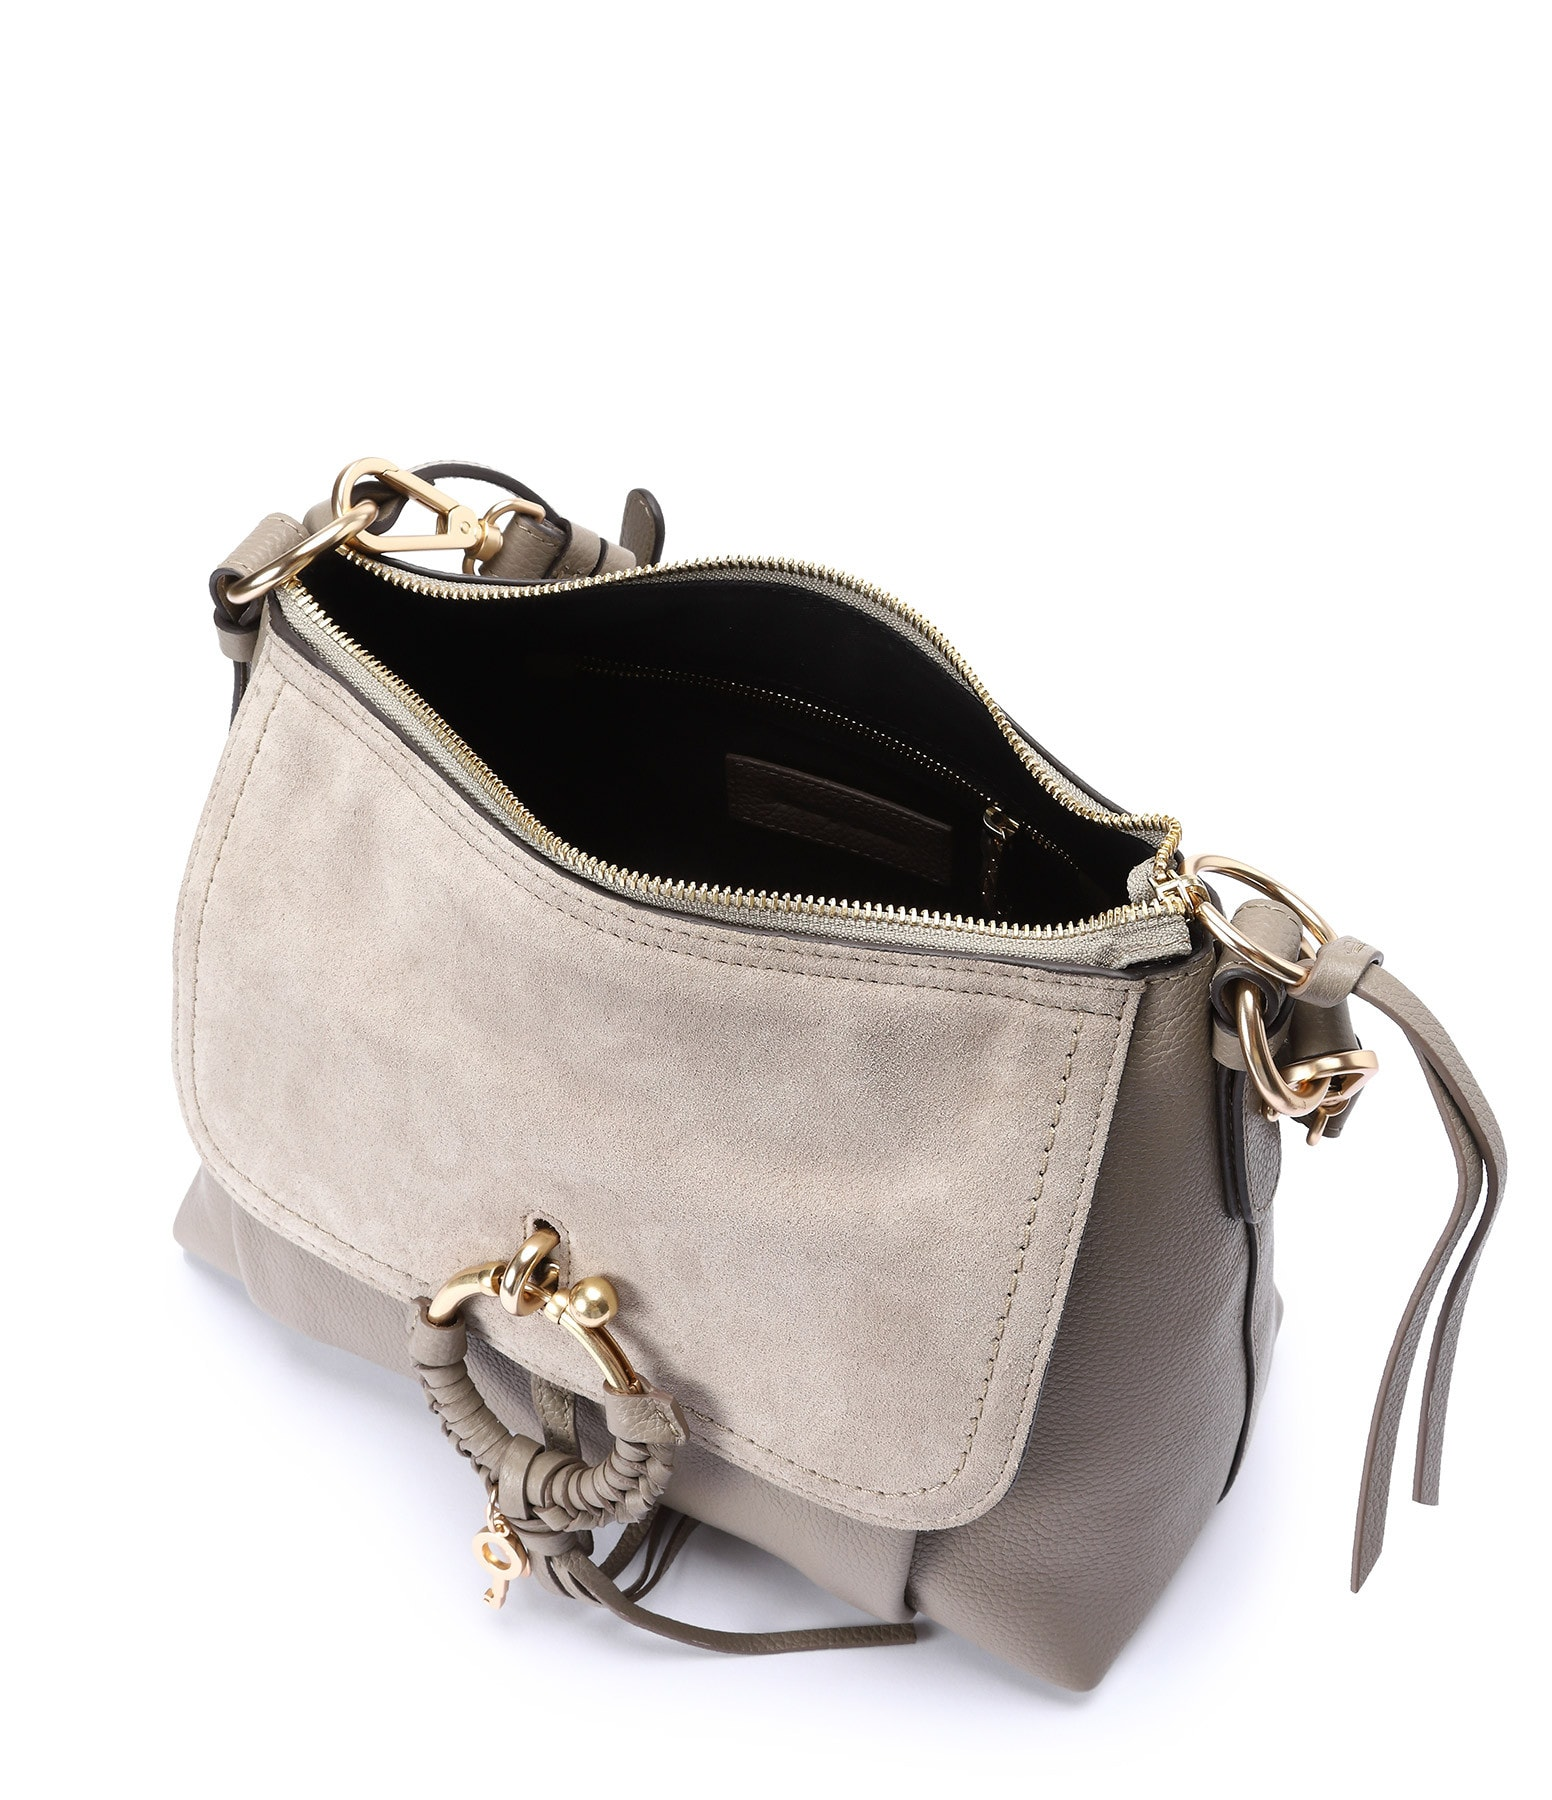 SEE BY CHLOE - Sac Joan PM Cuir Grainé Motty Grey